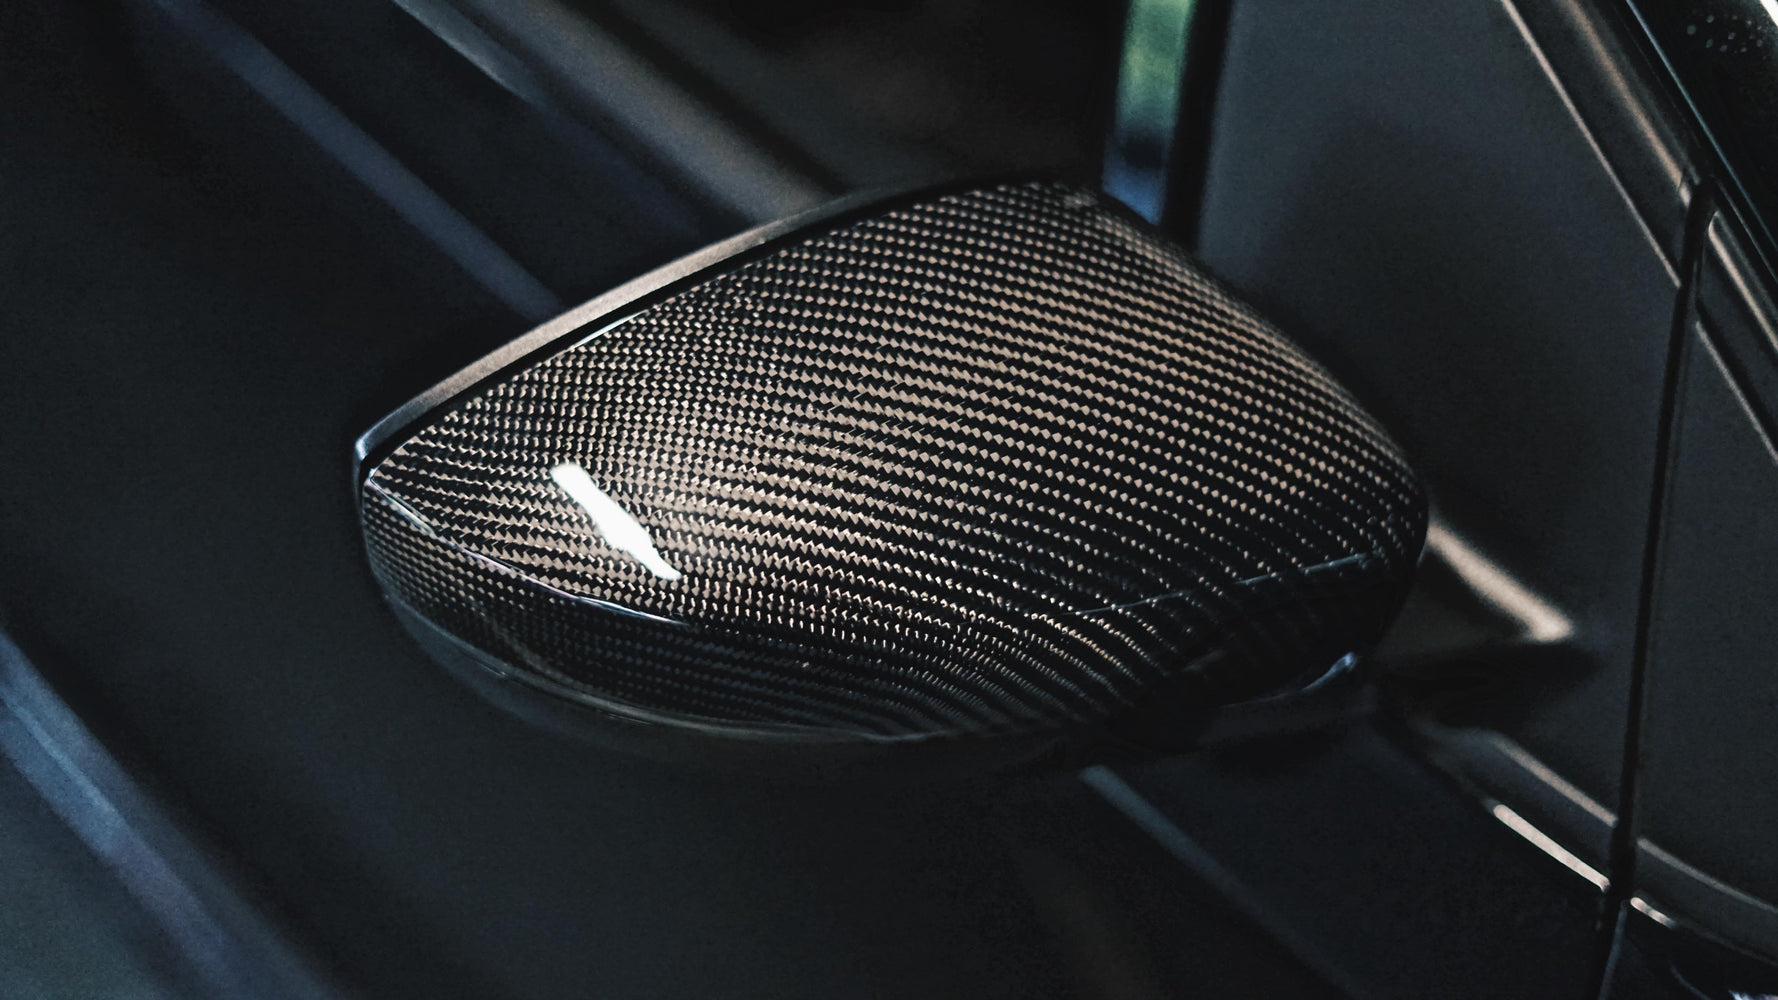 Volkswagen VW Polo Genuine Carbon Fibre Replacement Wing Mirror Covers MK5 6C / 6R (2009-2017 Models)